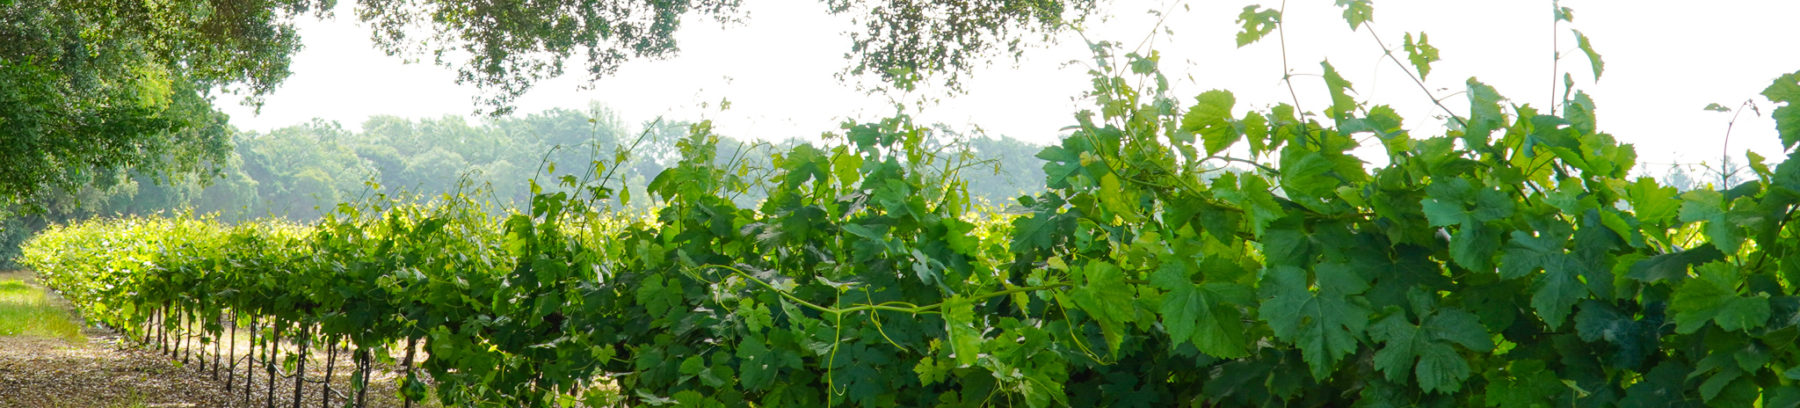 Beautiful vineyard near where many of our landscape contractors work.